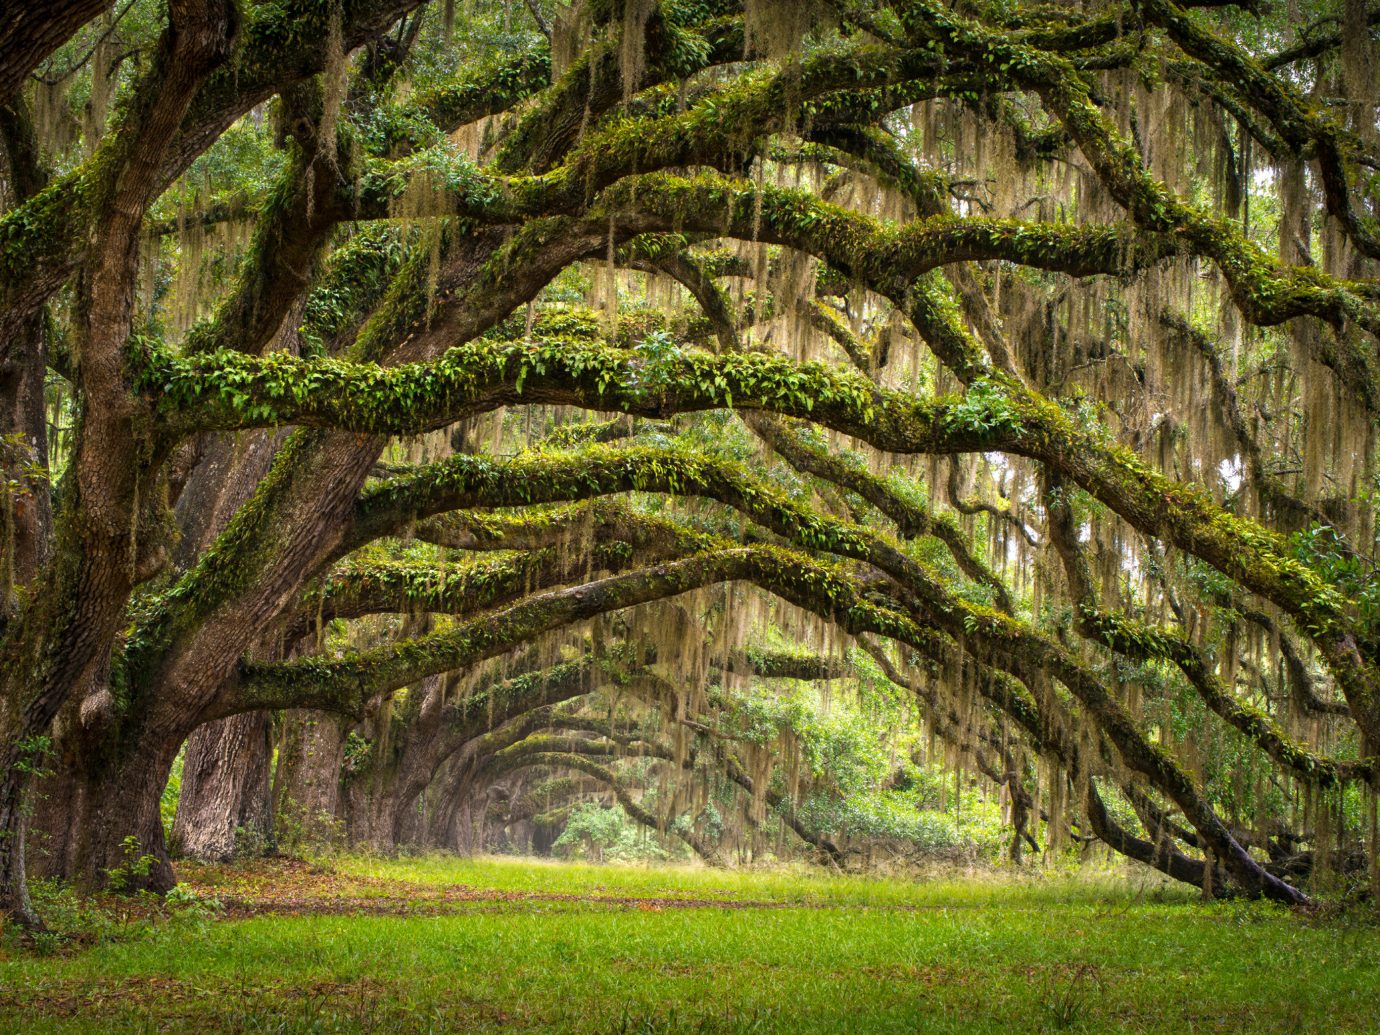 Exterior Forest Grounds Hotels Outdoors Trip Ideas Waterfront tree grass plant outdoor habitat green vegetation natural environment woodland ecosystem grove botany old growth forest branch woody plant park land plant trunk leaf deciduous plantation rainforest plant stem sunlight flower Jungle willow area lush wooded